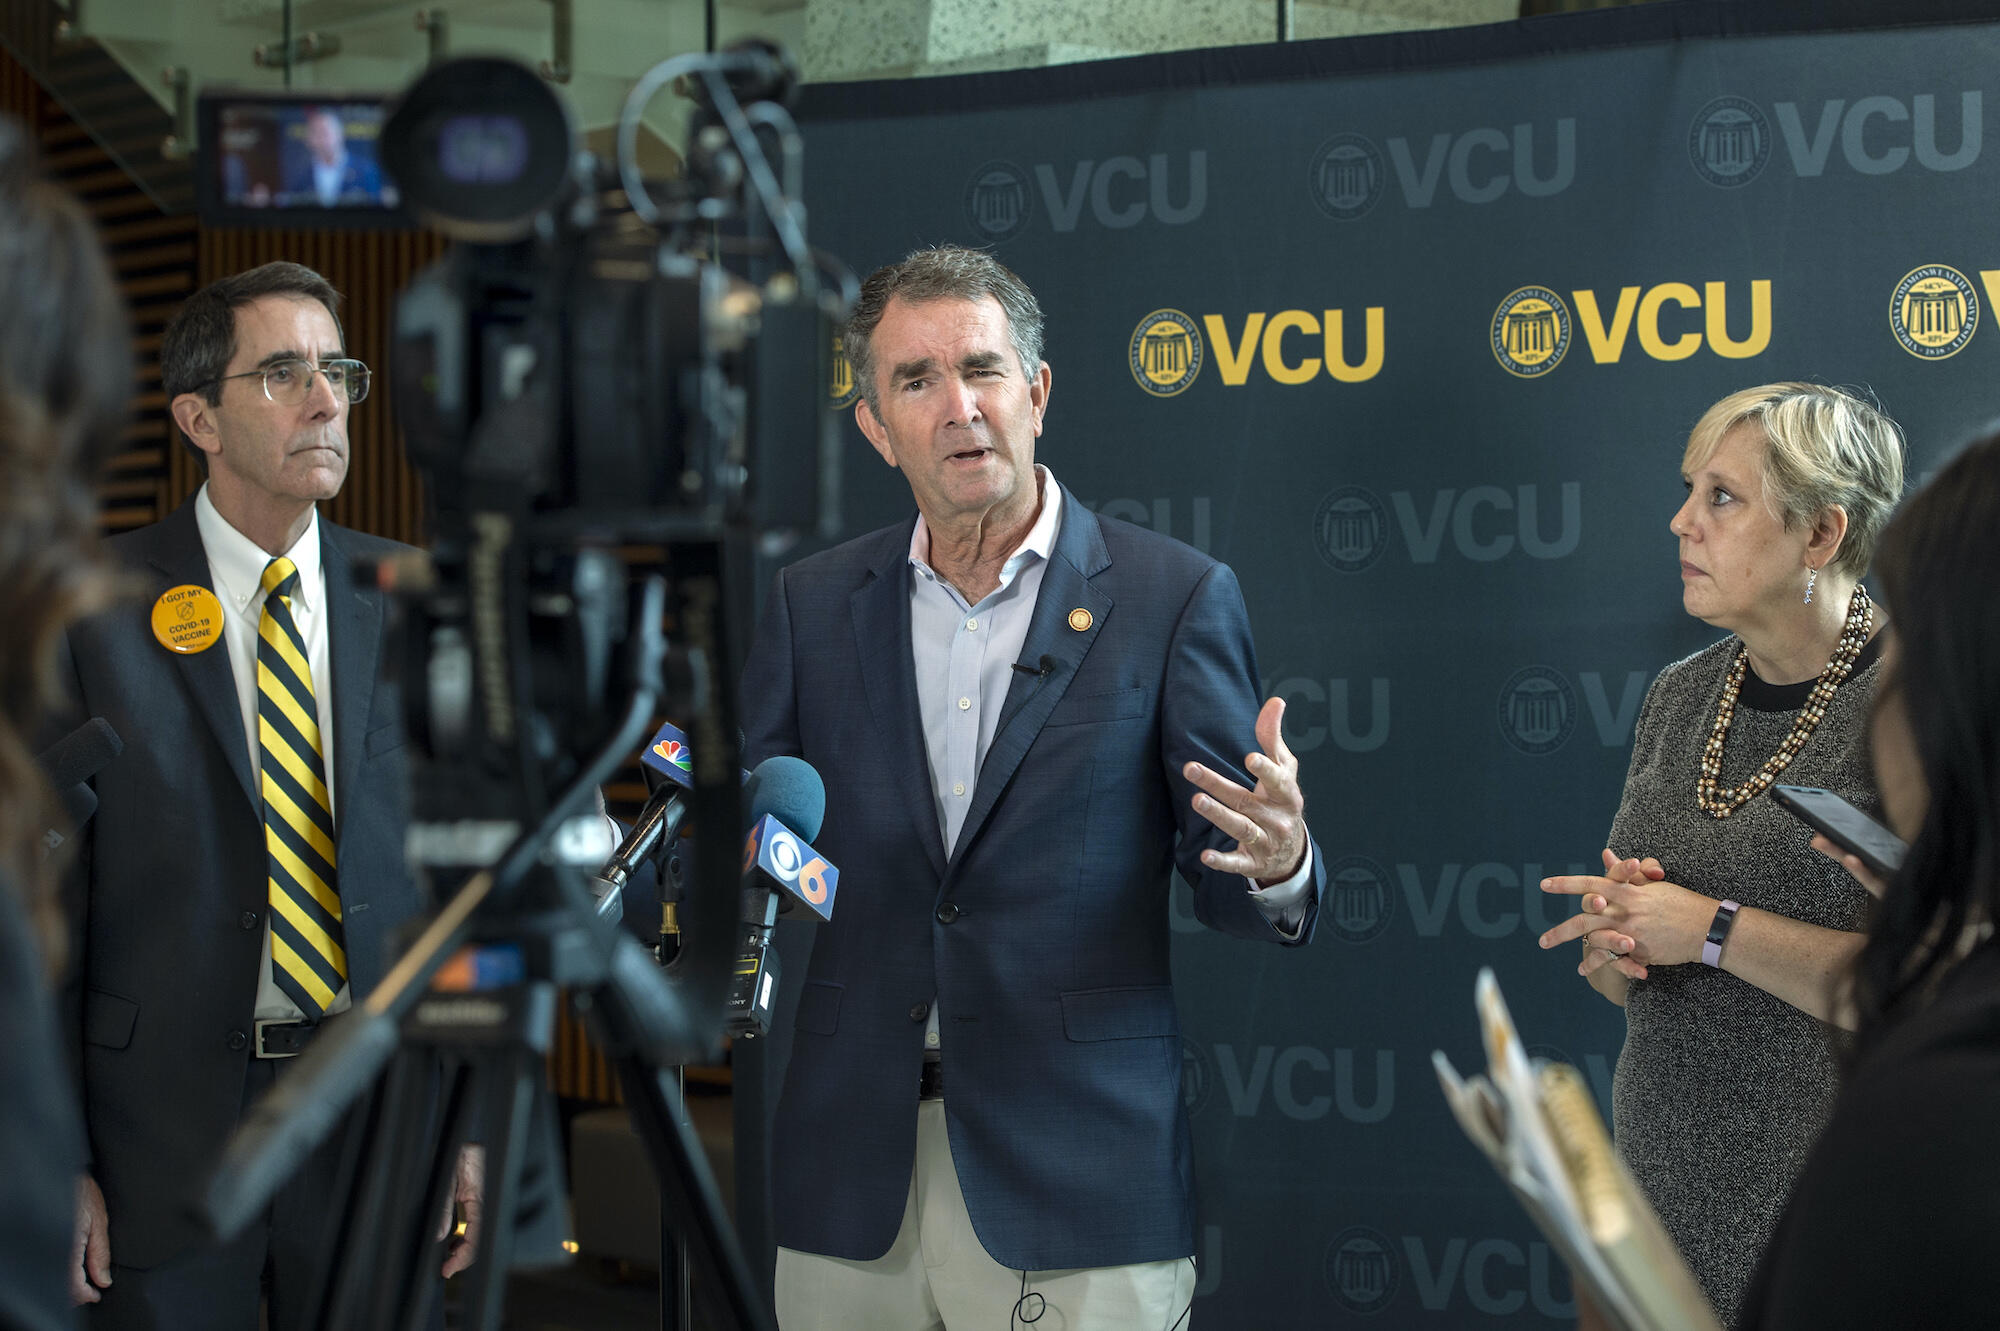 Virginia Gov. Ralph Northam, M.D., (center) addresses reporters Thursday as Art Kellermann, M.D., (left) senior vice president for VCU Health Sciences and CEO of VCU Health System, and Susan Parish, Ph.D., (right) dean of VCU's College of Health Professions, look on during the governor's visit to the college's building.